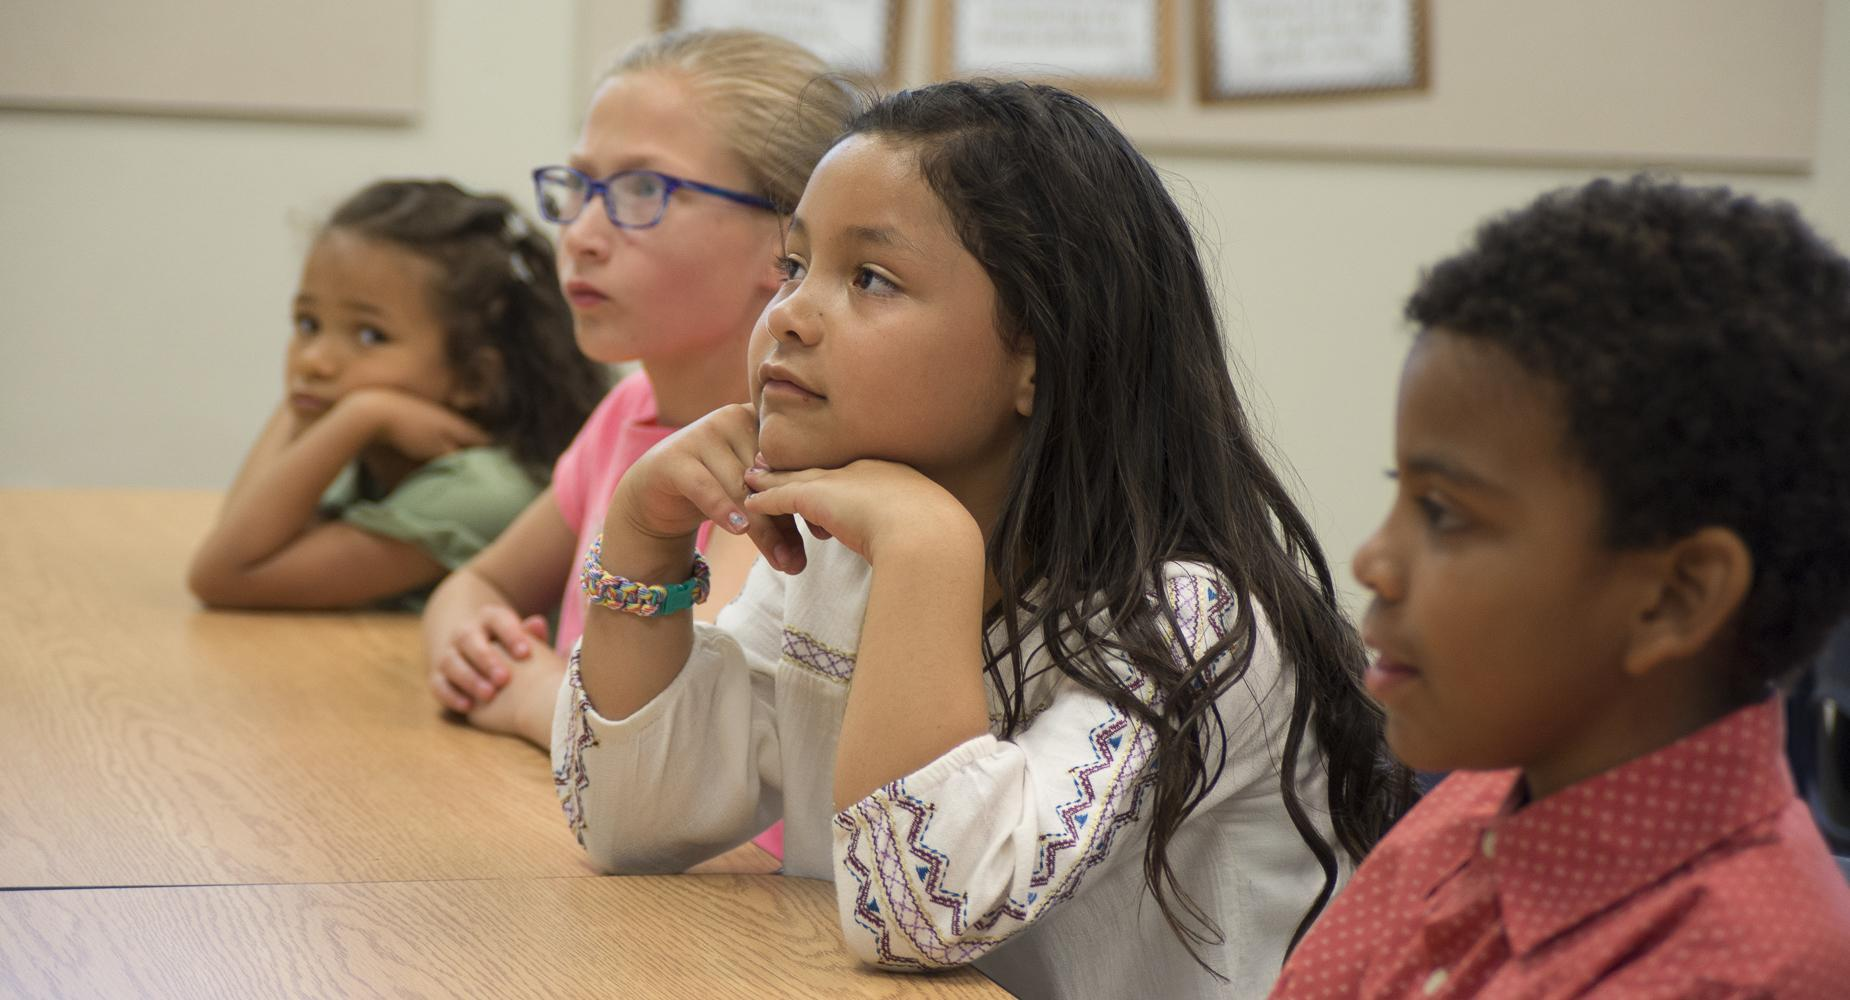 Girl rests her chin on her hands while listening in class.